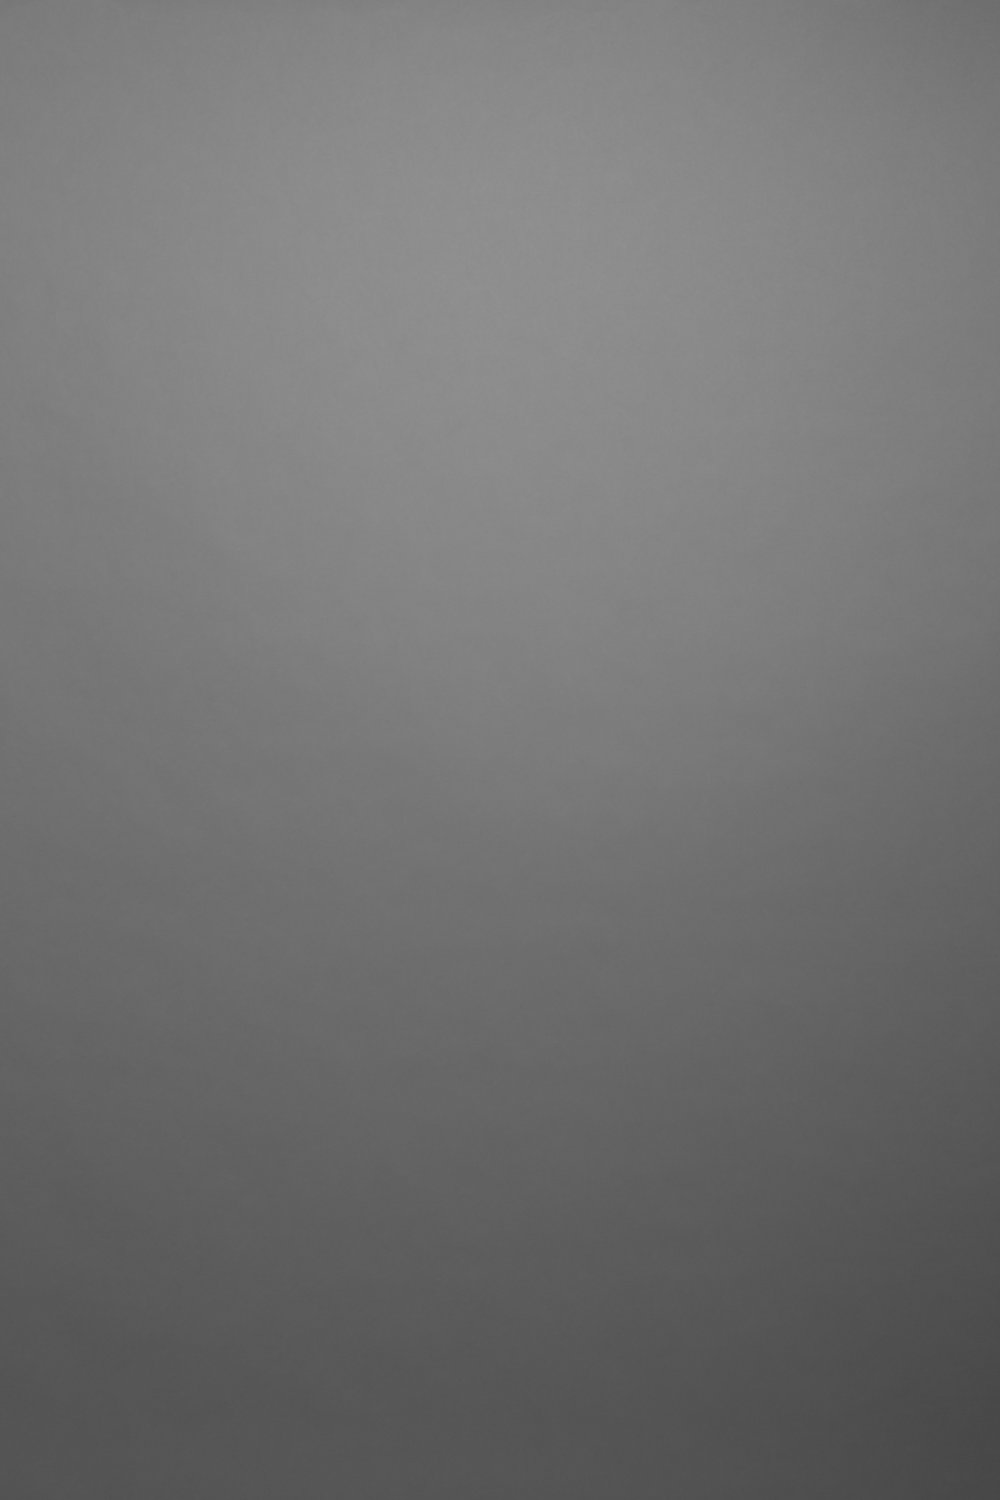 Dark Grey Three Quarters Background